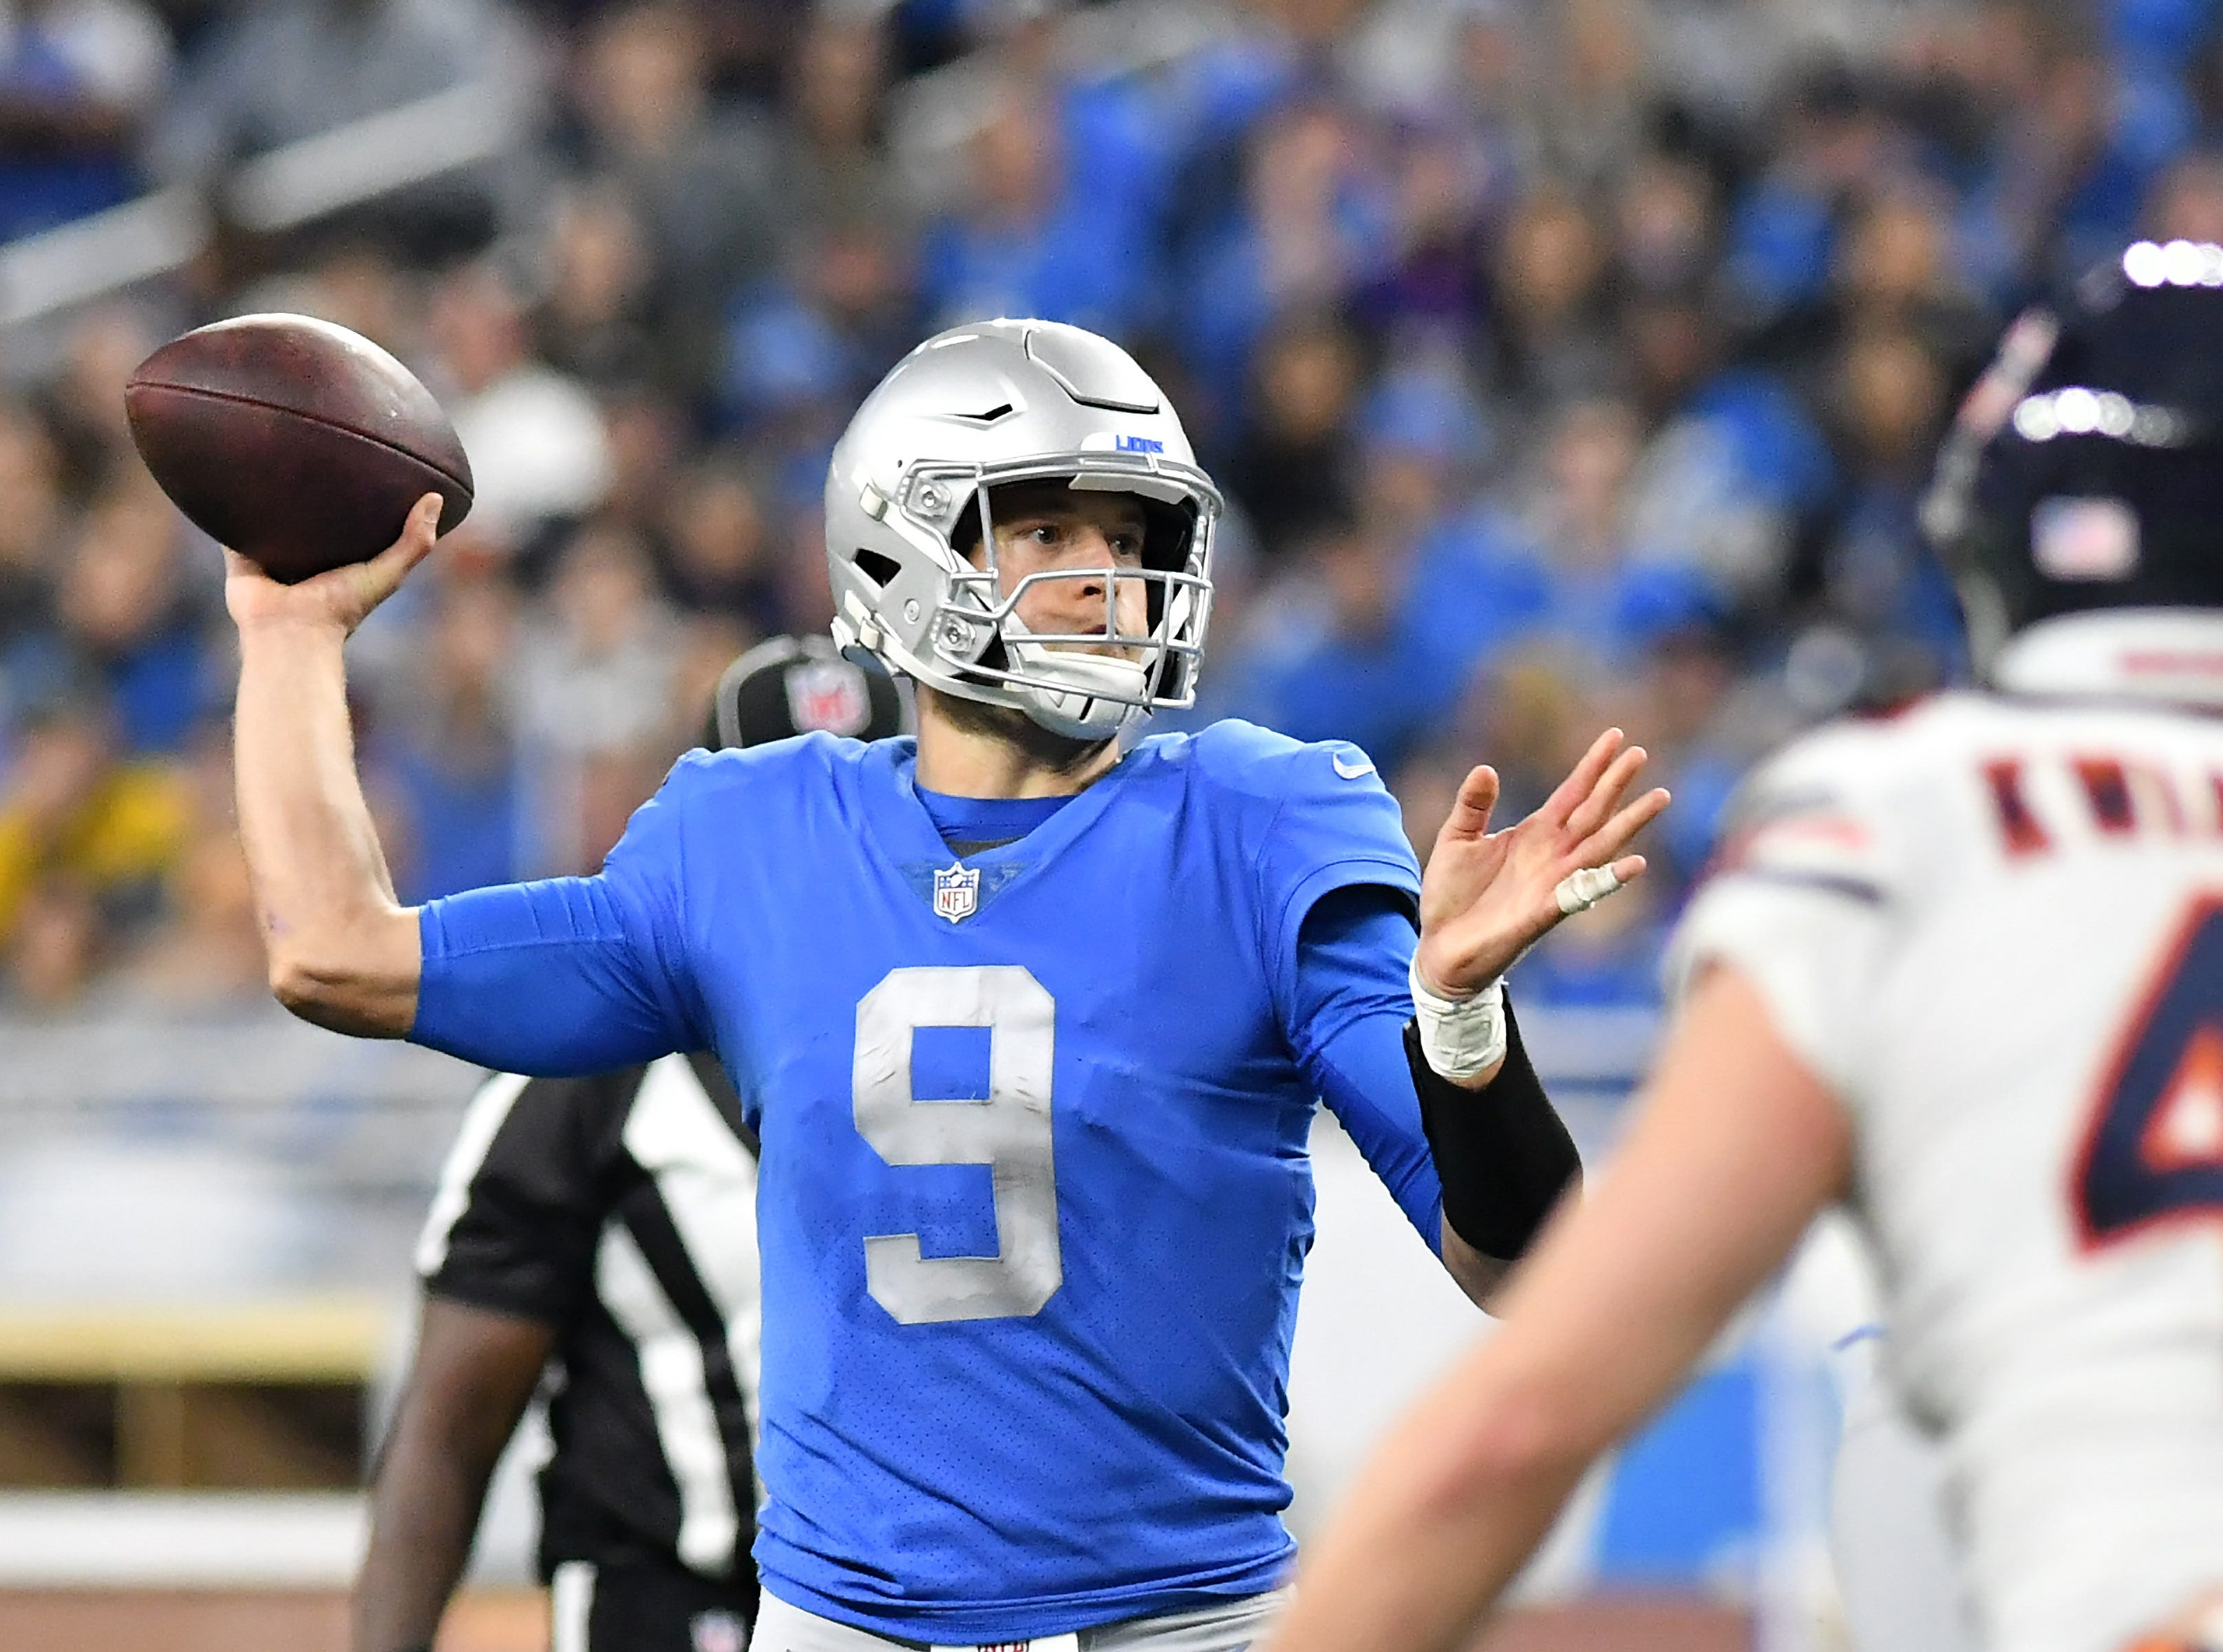 Lions quarterback Matthew Stafford looks for an open man late In the fourth quarter.  Detroit Lions vs Chicago Bears on Thanksgiving Day at Ford Field in Detroit on Nov. 22, 2018.  Bears win, 23-16.